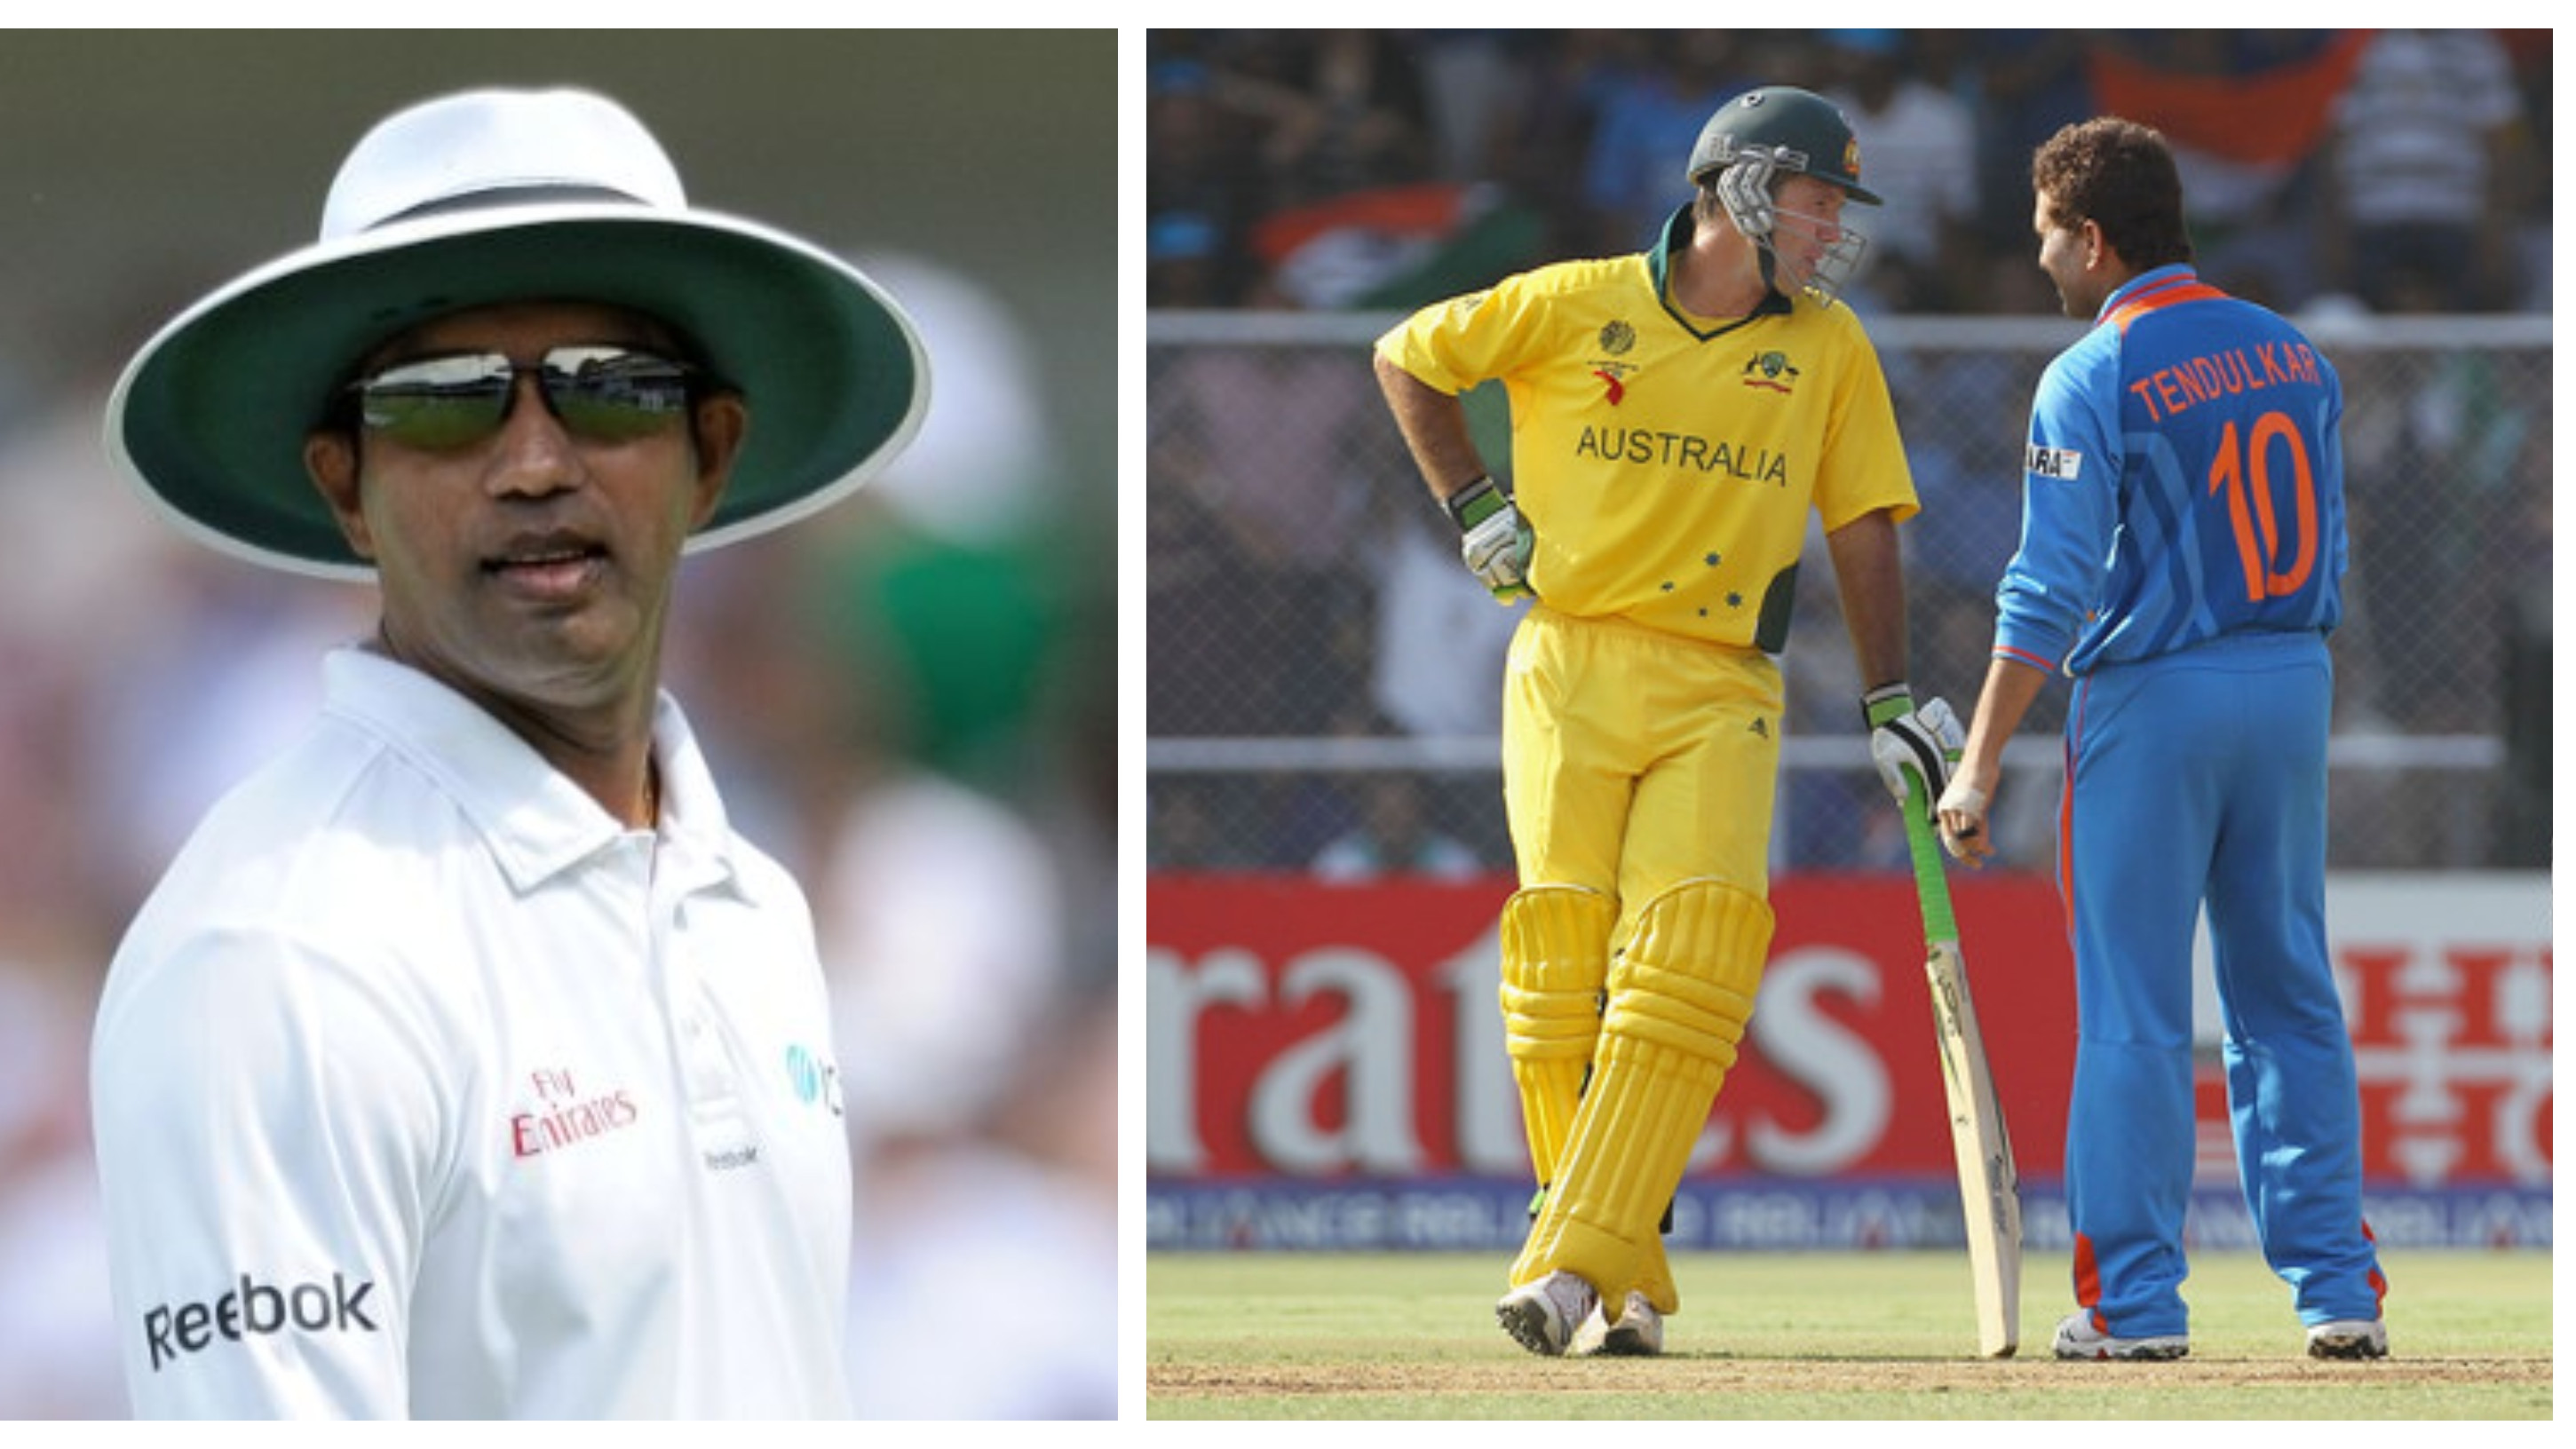 Watch: Former SL spinner Kumar Dharmasena reveals his all-time XI